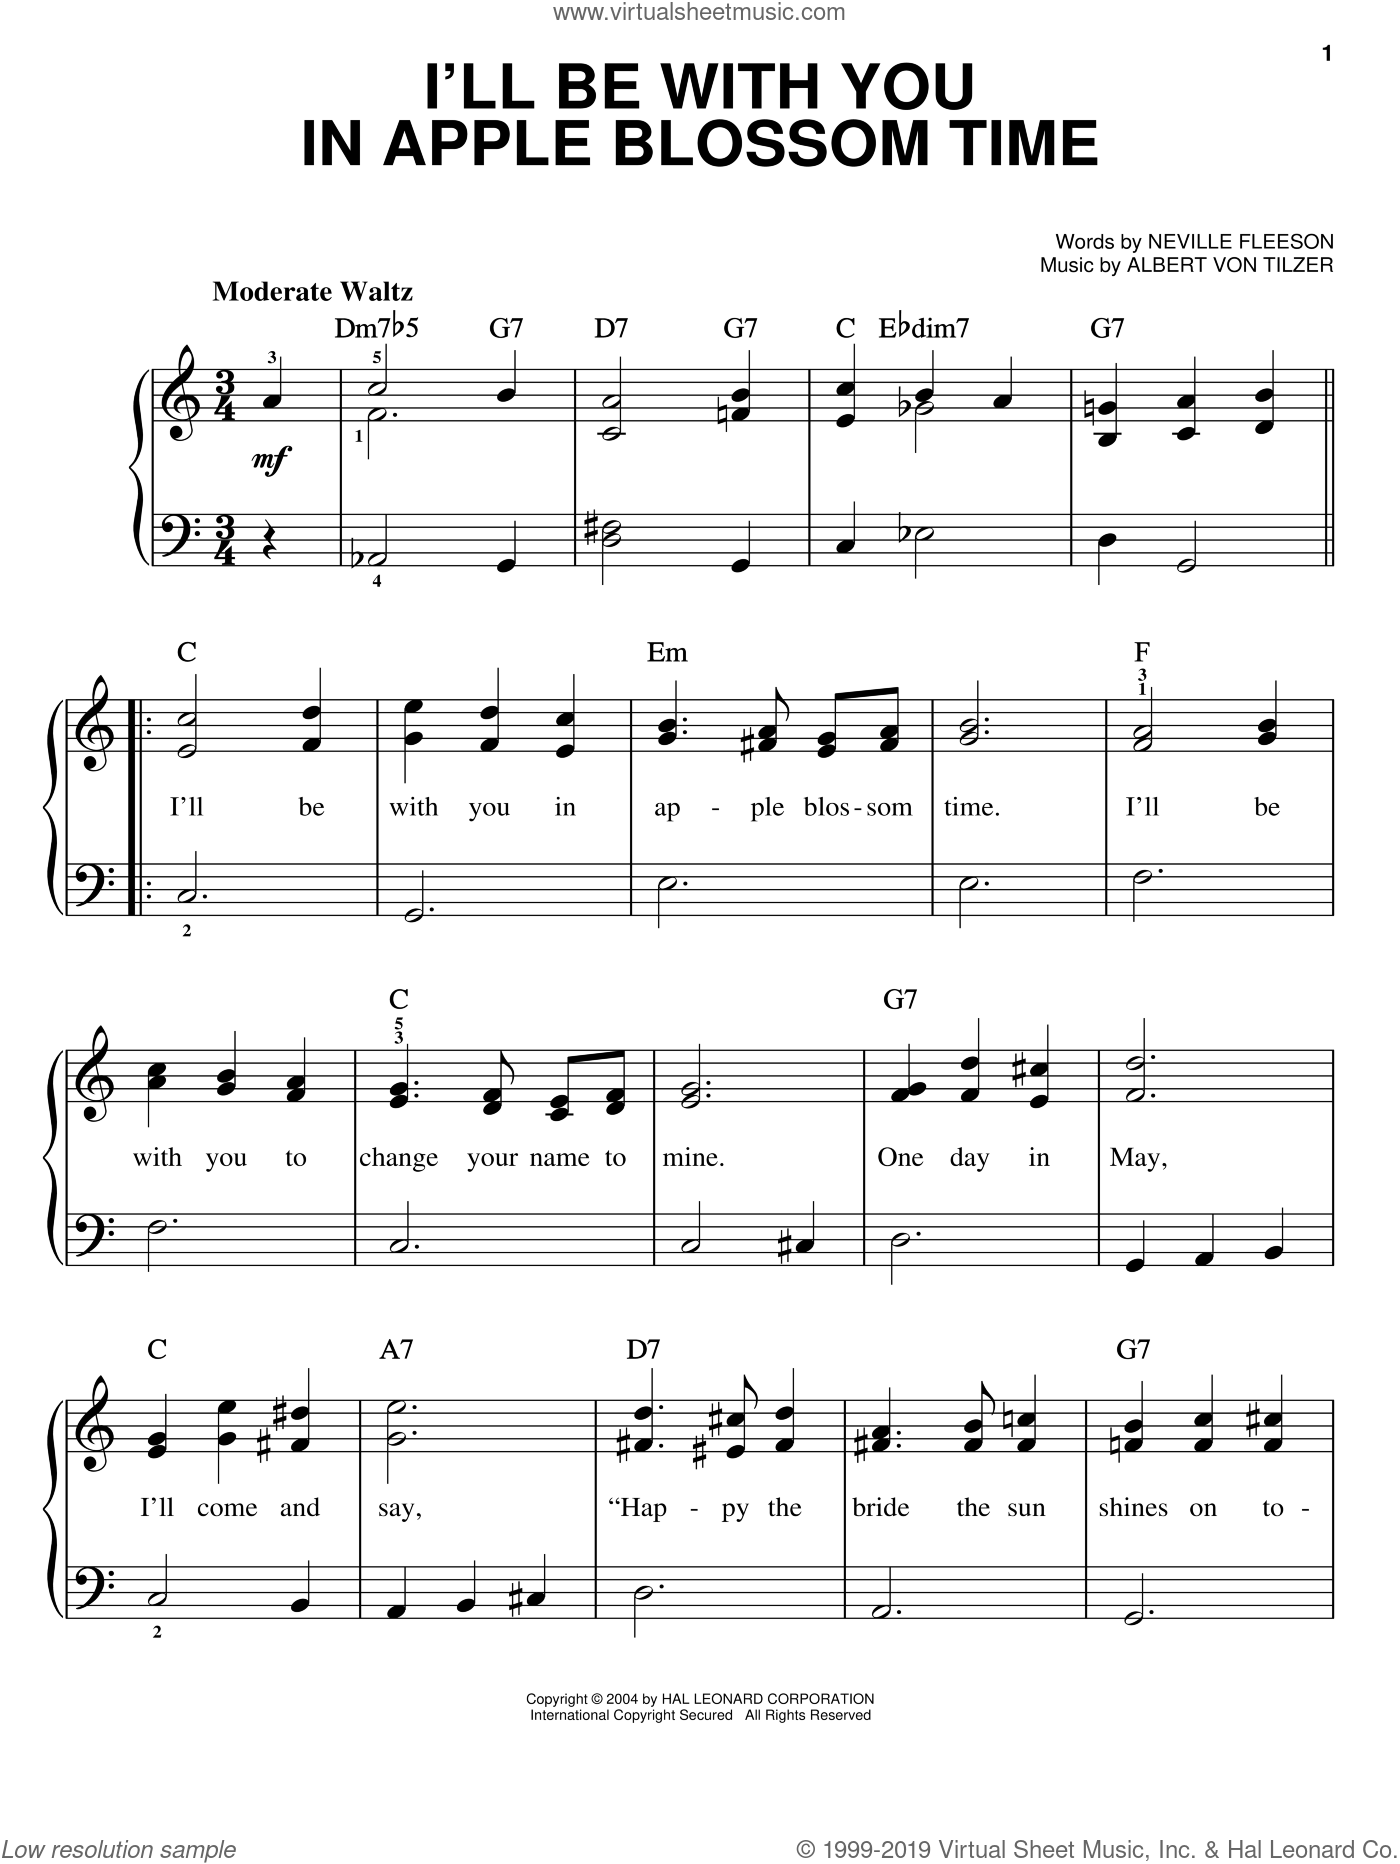 I'll Be With You In Apple Blossom Time sheet music for piano solo by Neville Fleeson and Albert von Tilzer, easy skill level